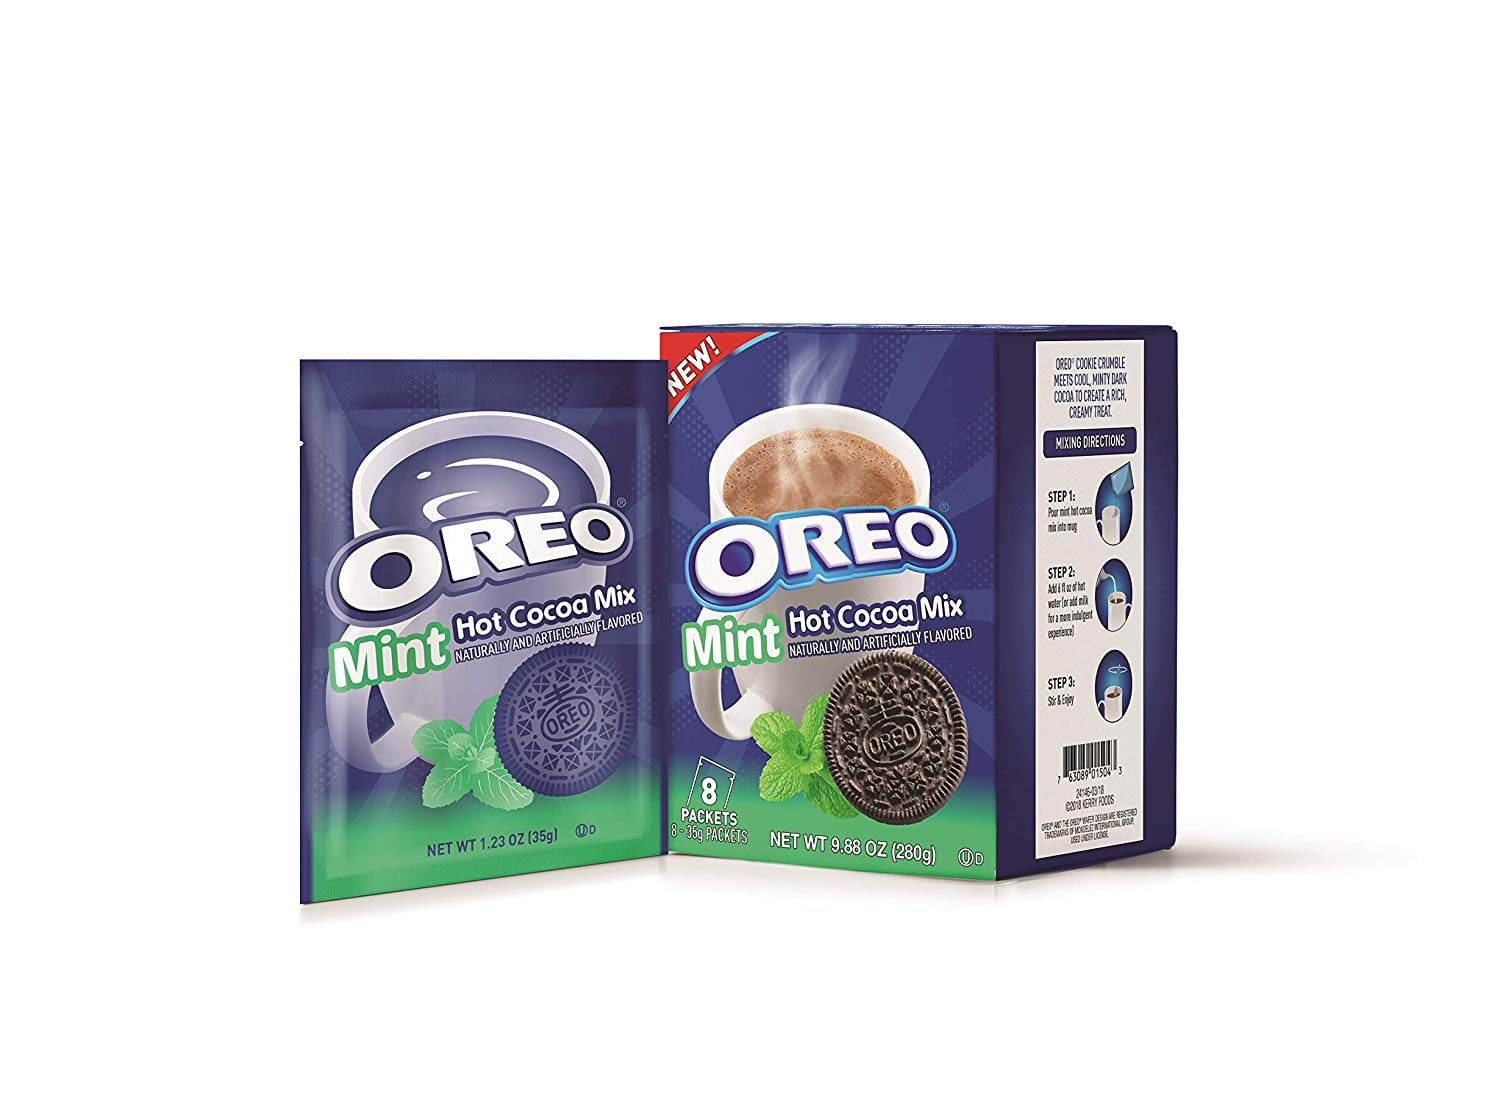 Oreo Mint Hot Chocolate Is Everything Our Cozy Nights Were Missing